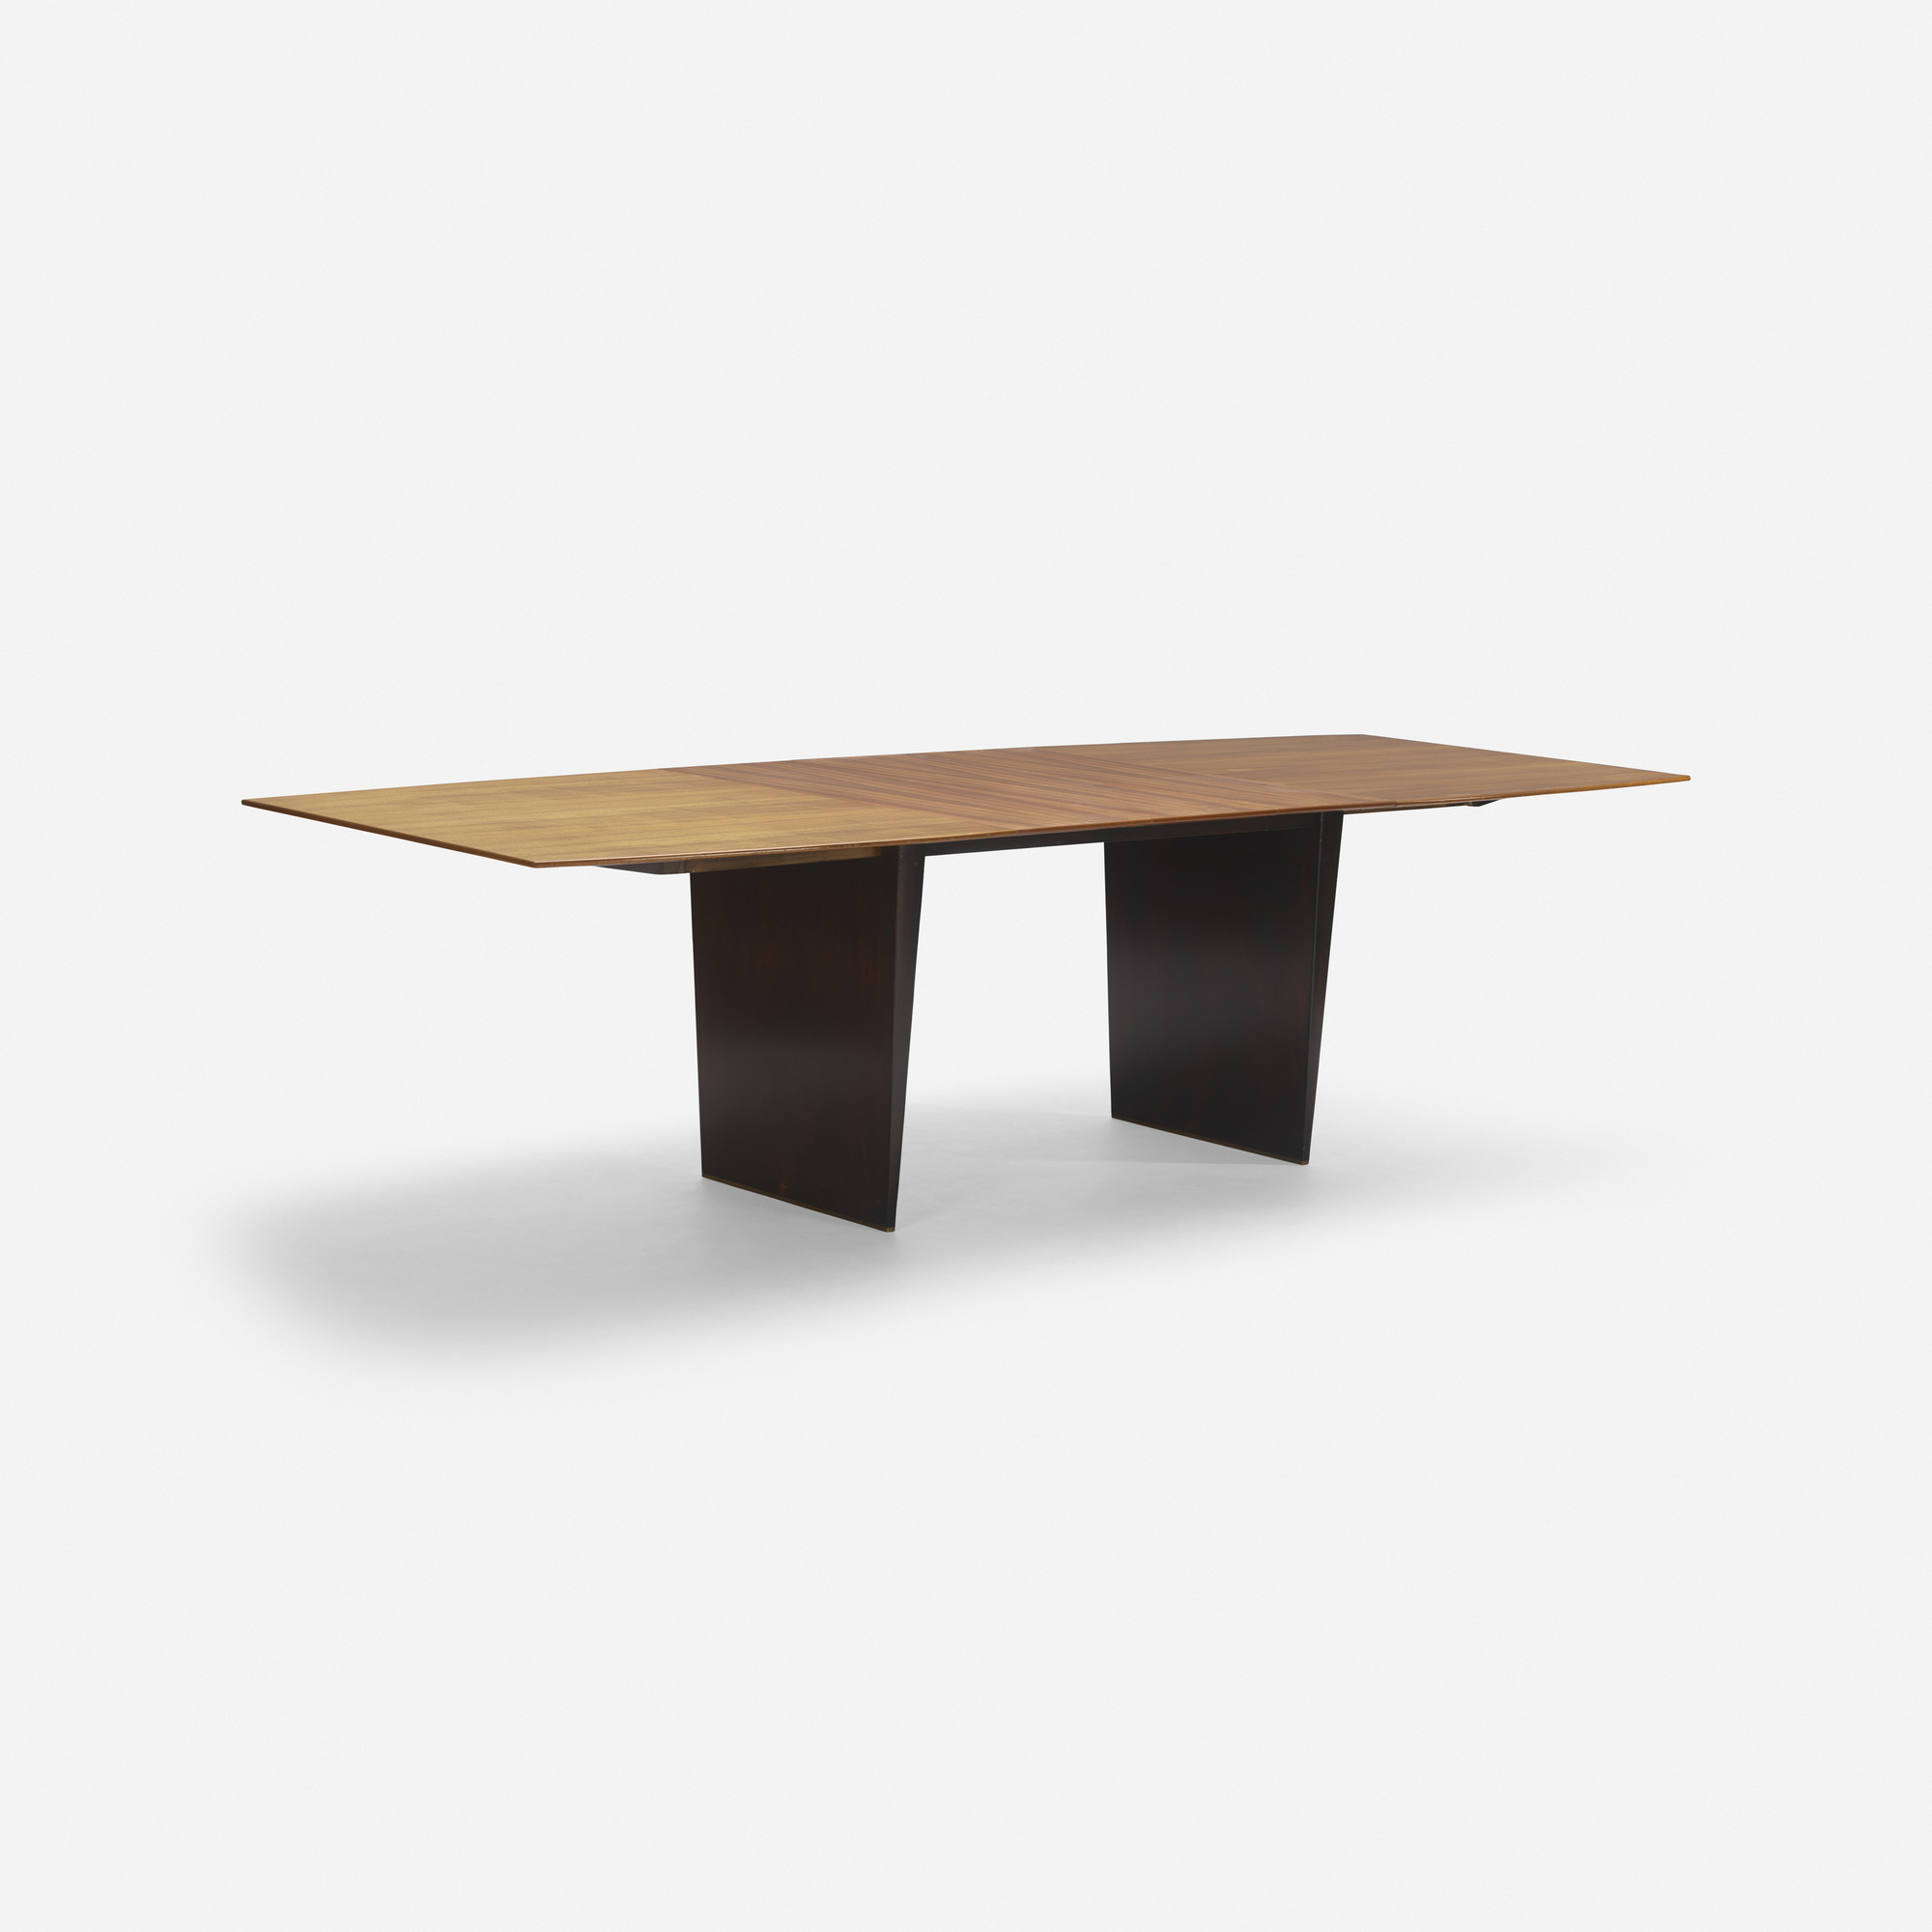 373: Edward Wormley / dining table, model 5640 (2 of 2)